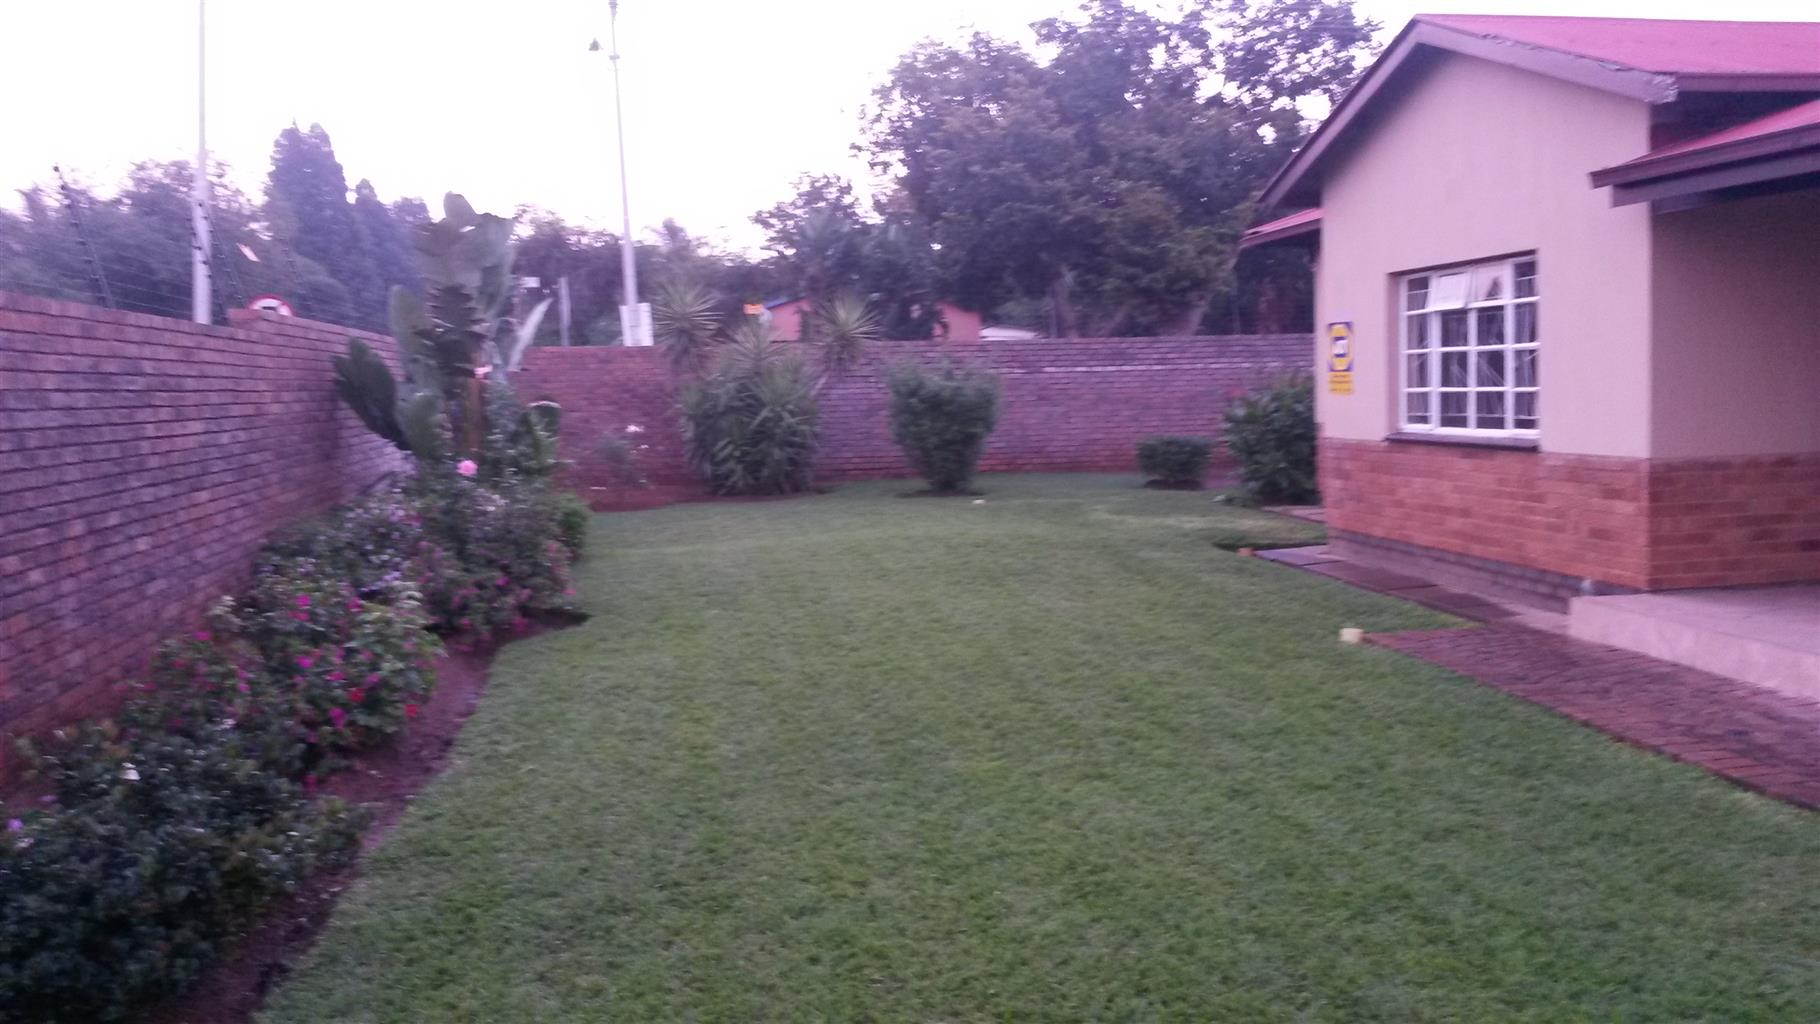 3 Bedroom Simplex to Rent in Pretoria North